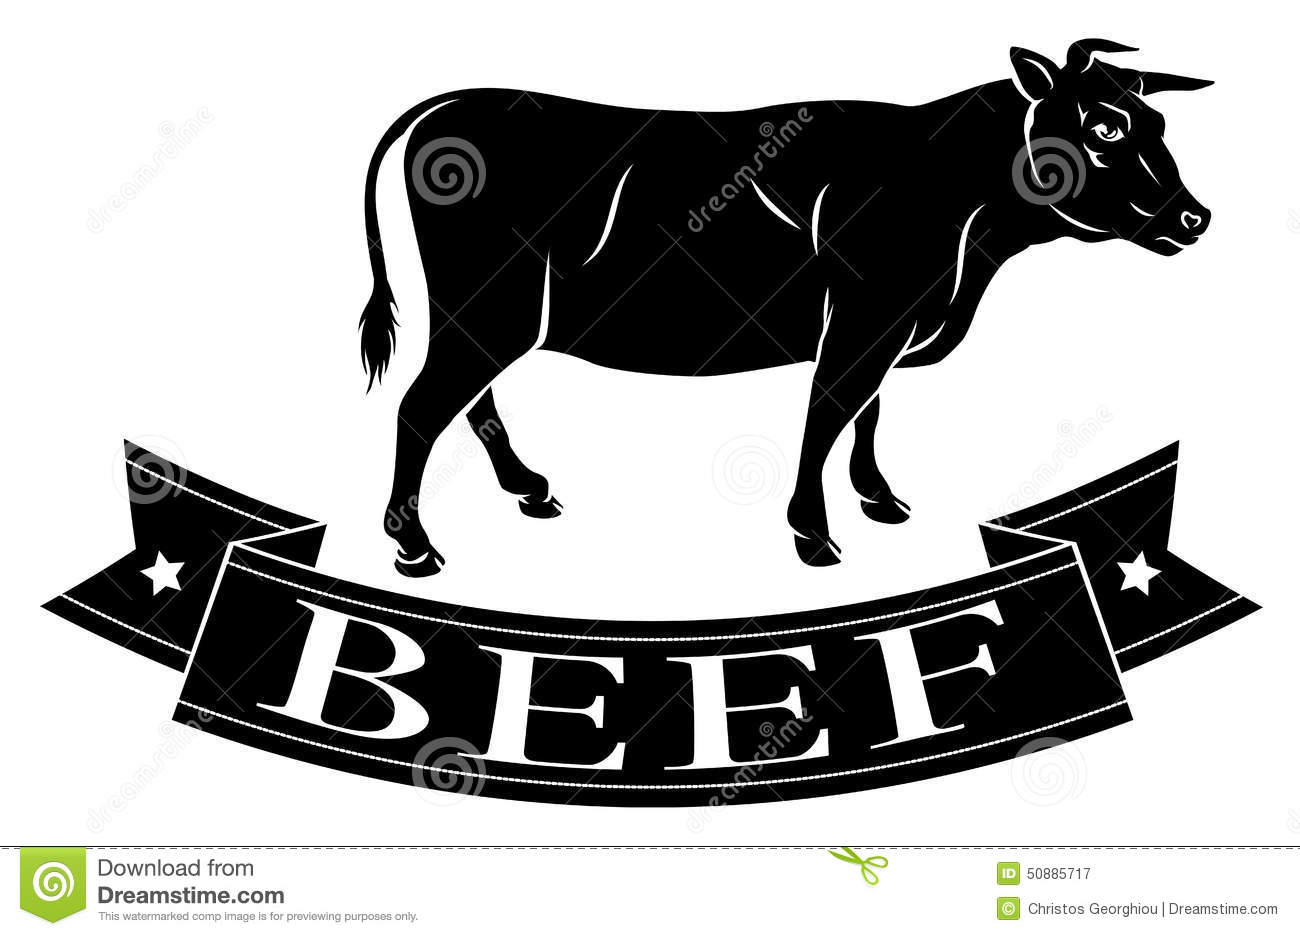 Beef Food Icon Stock Vector - Image: 50885717